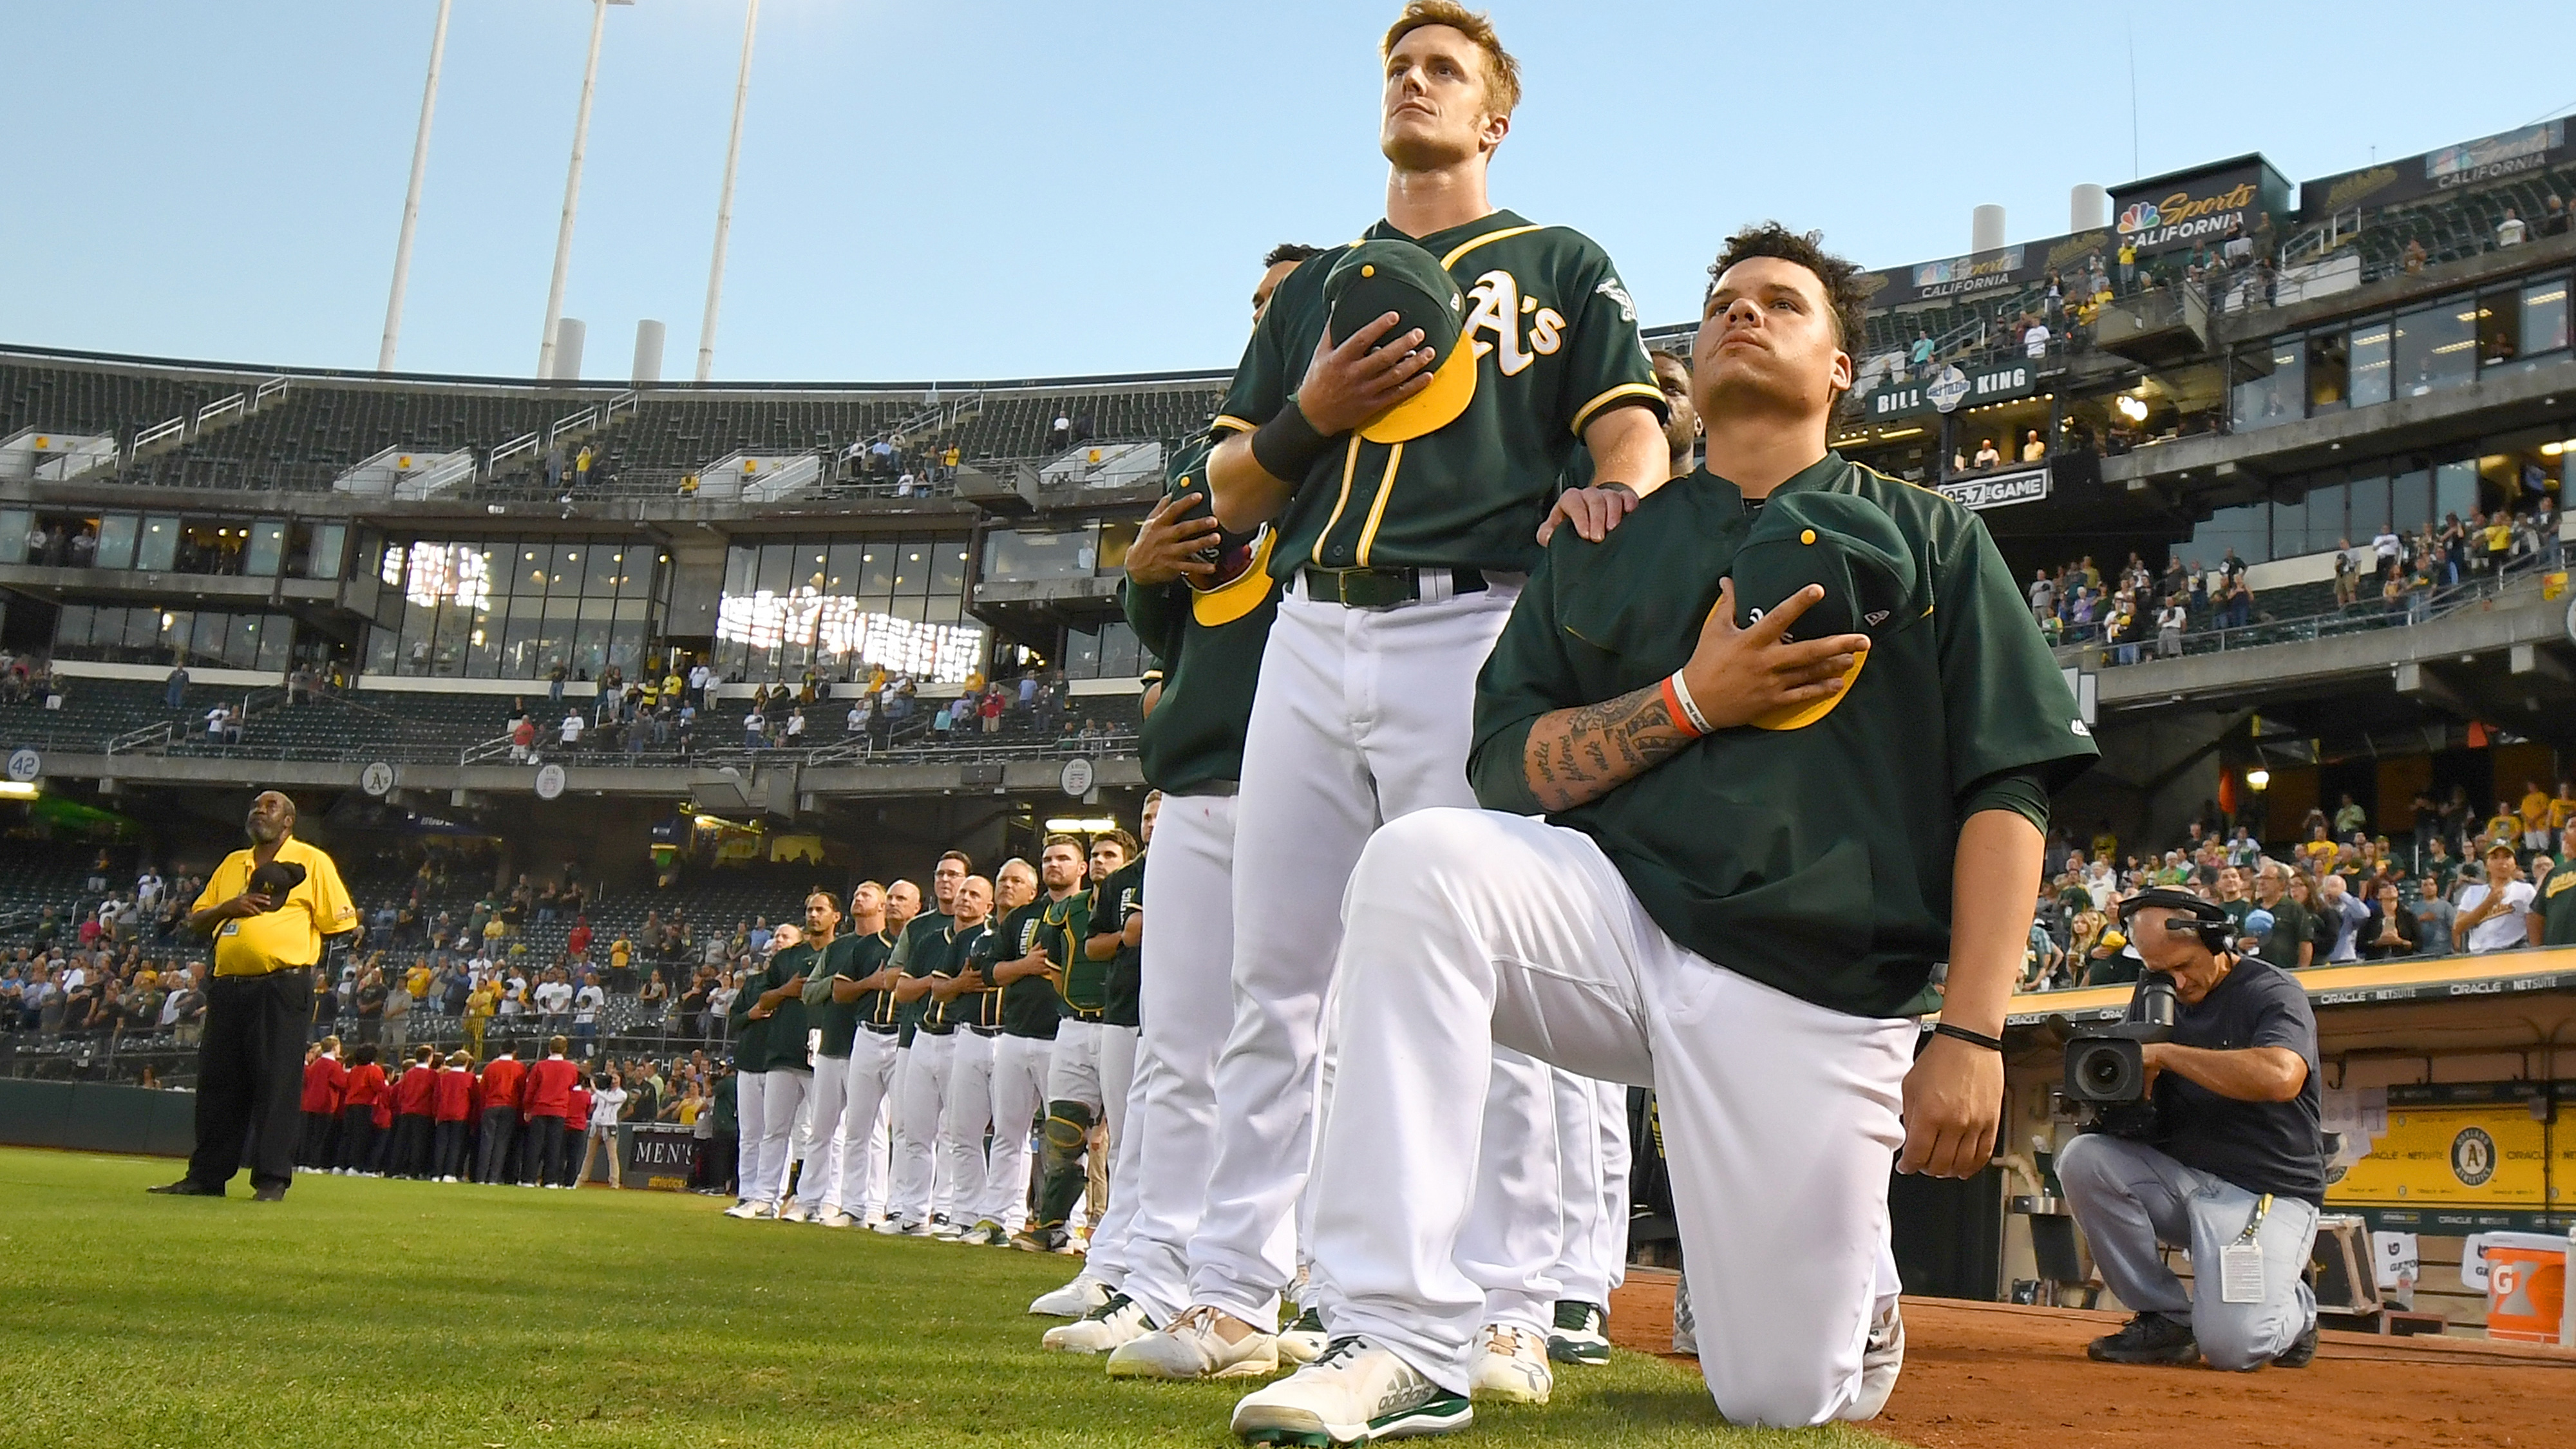 Bruce-maxwell-national-anthem-kneel-protest